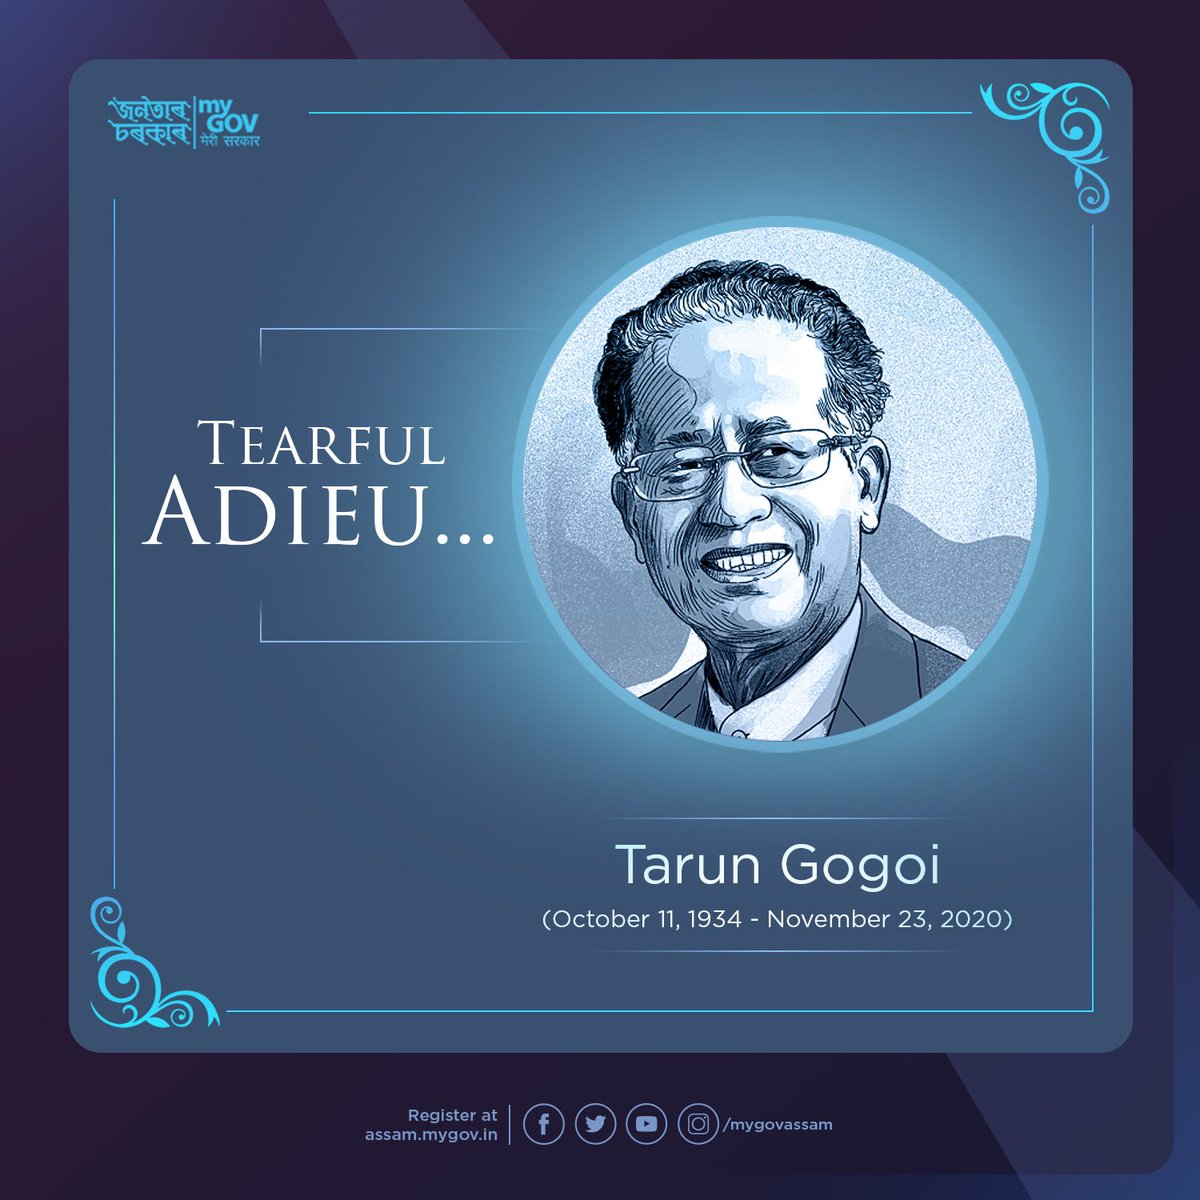 Rich tributes to former CM of Assam and veteran leader Tarun Gogoi as he leaves for his heavenly abode today. His stint as a political leader is one marked with remarkable leadership, unflinching dedication to work and a cheerful stature. May his soul rest in peace. Om Shanti!